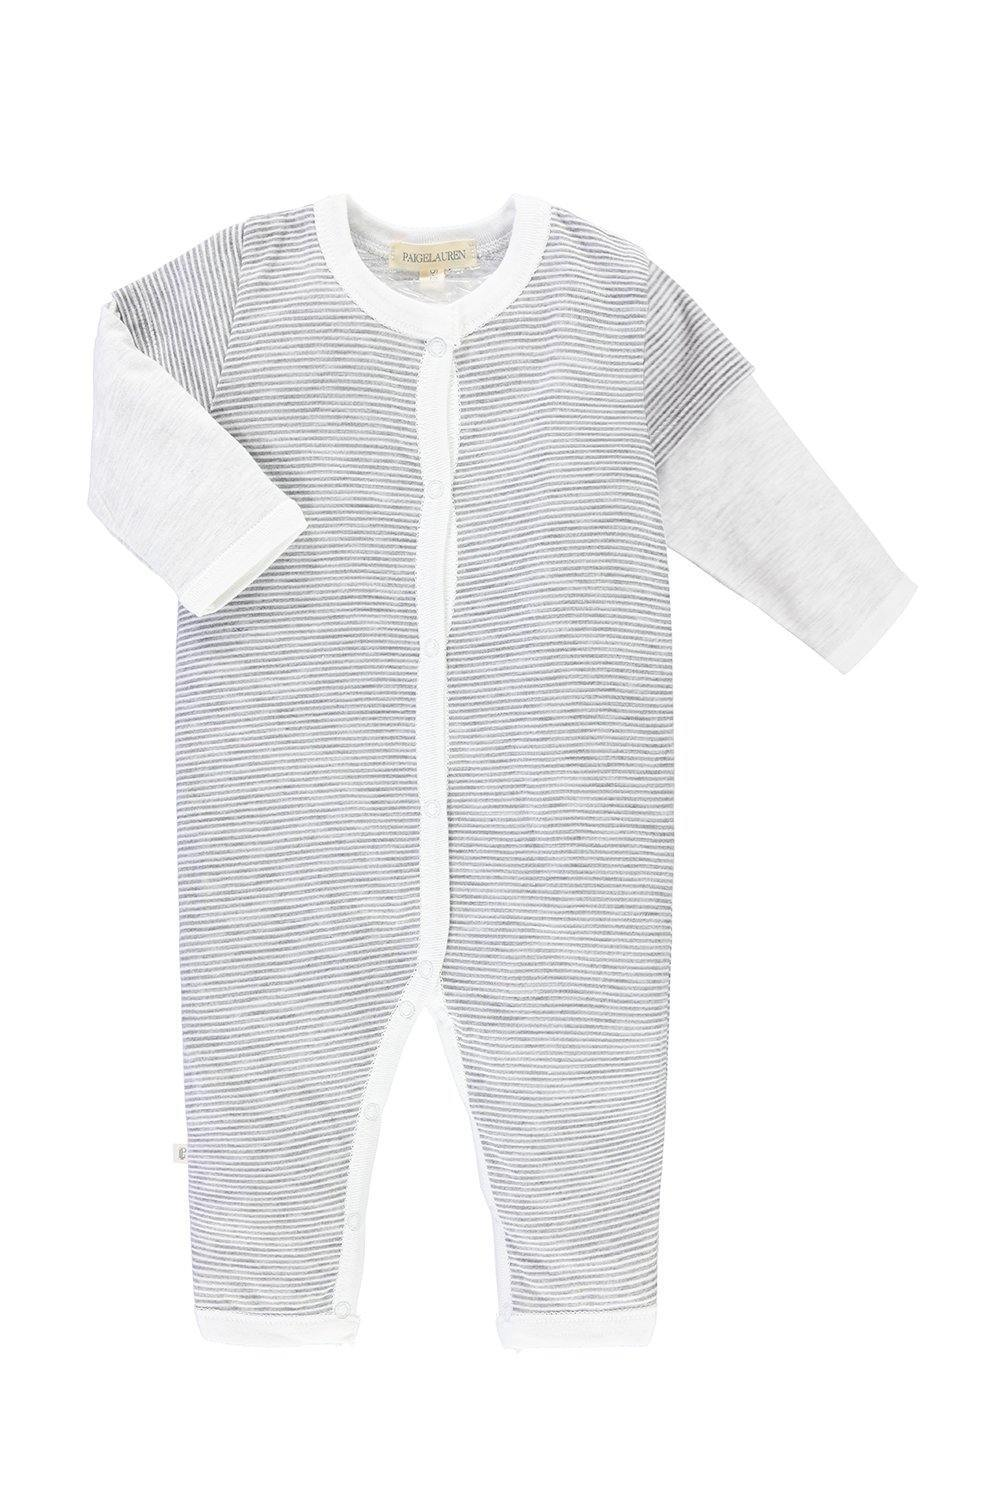 Baby Long-Sleeved Twofer Romper - Rock N' Roll - PAIGELAUREN